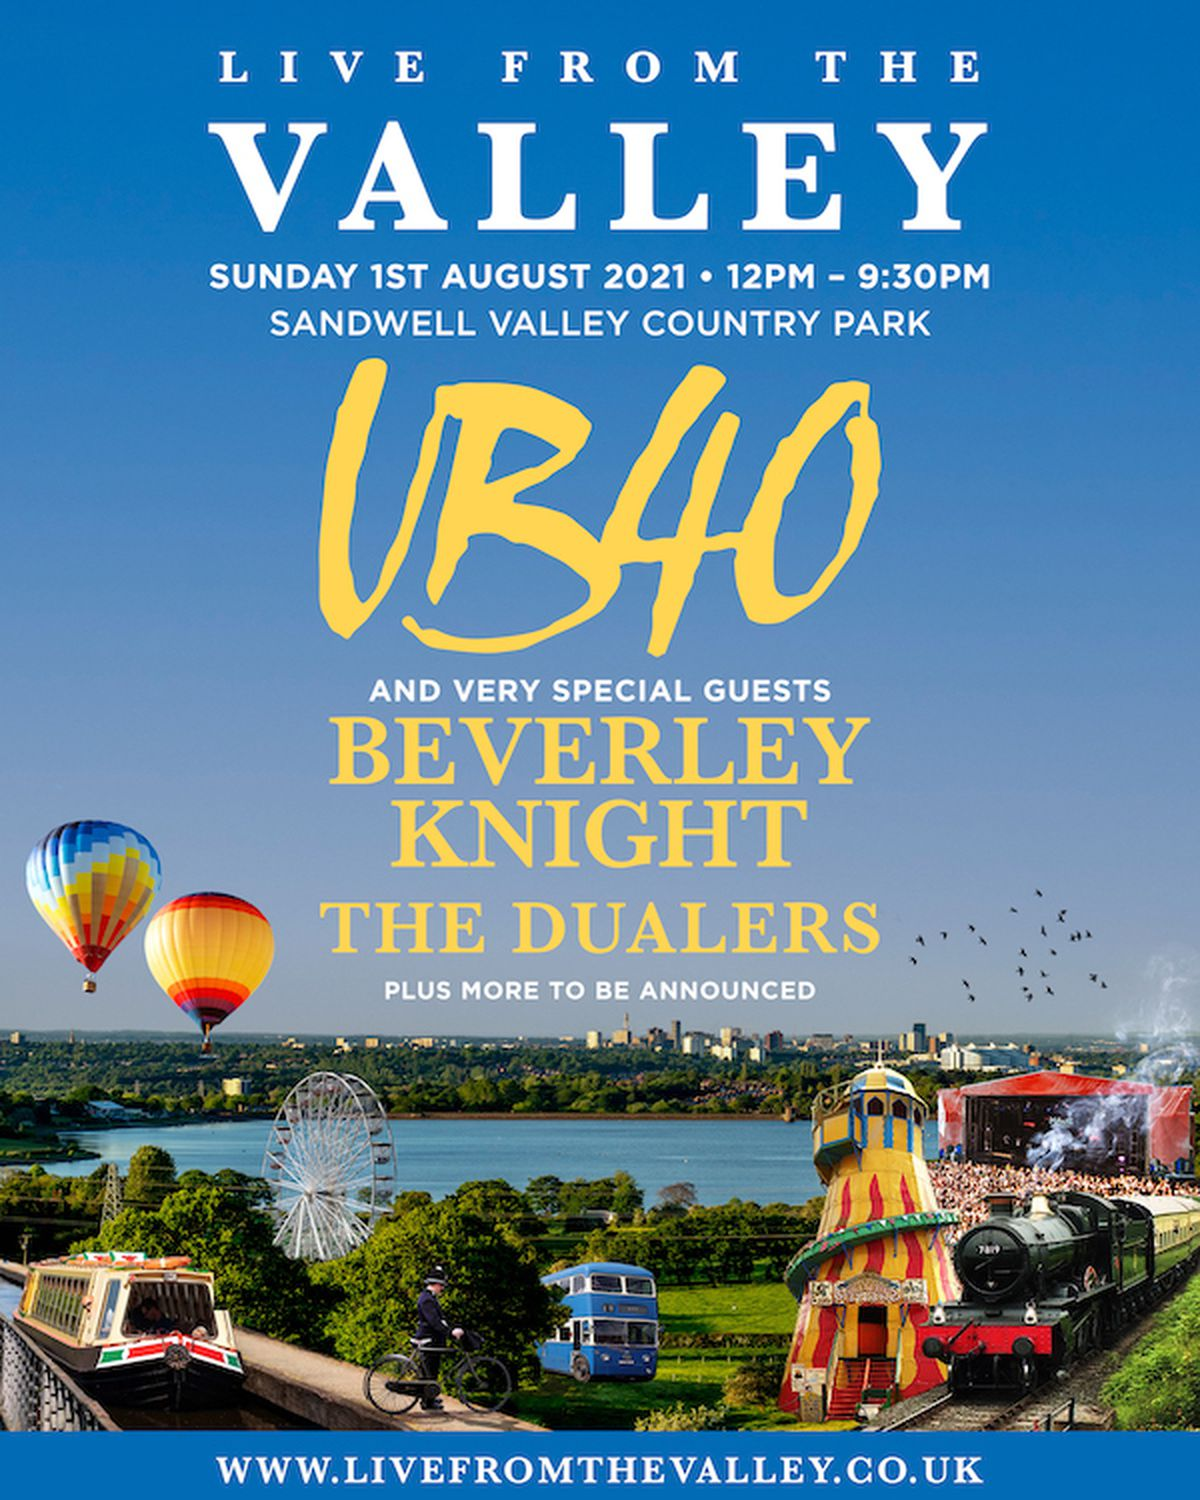 UB40: Live from the Valley will help open a summer of activities at Sandwell Valley Country Park